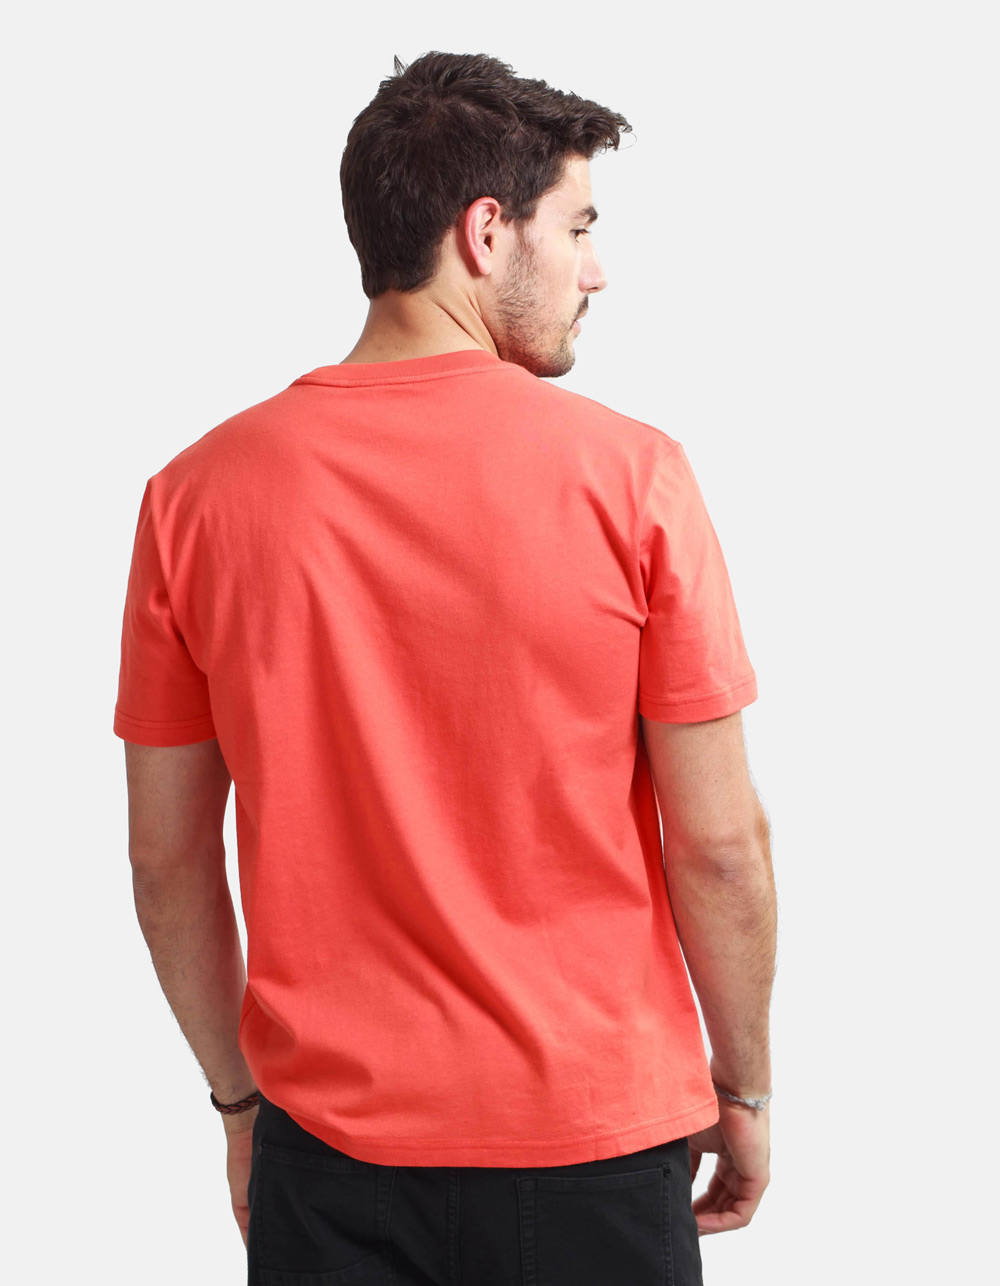 Orange shirt MACSON - Backside